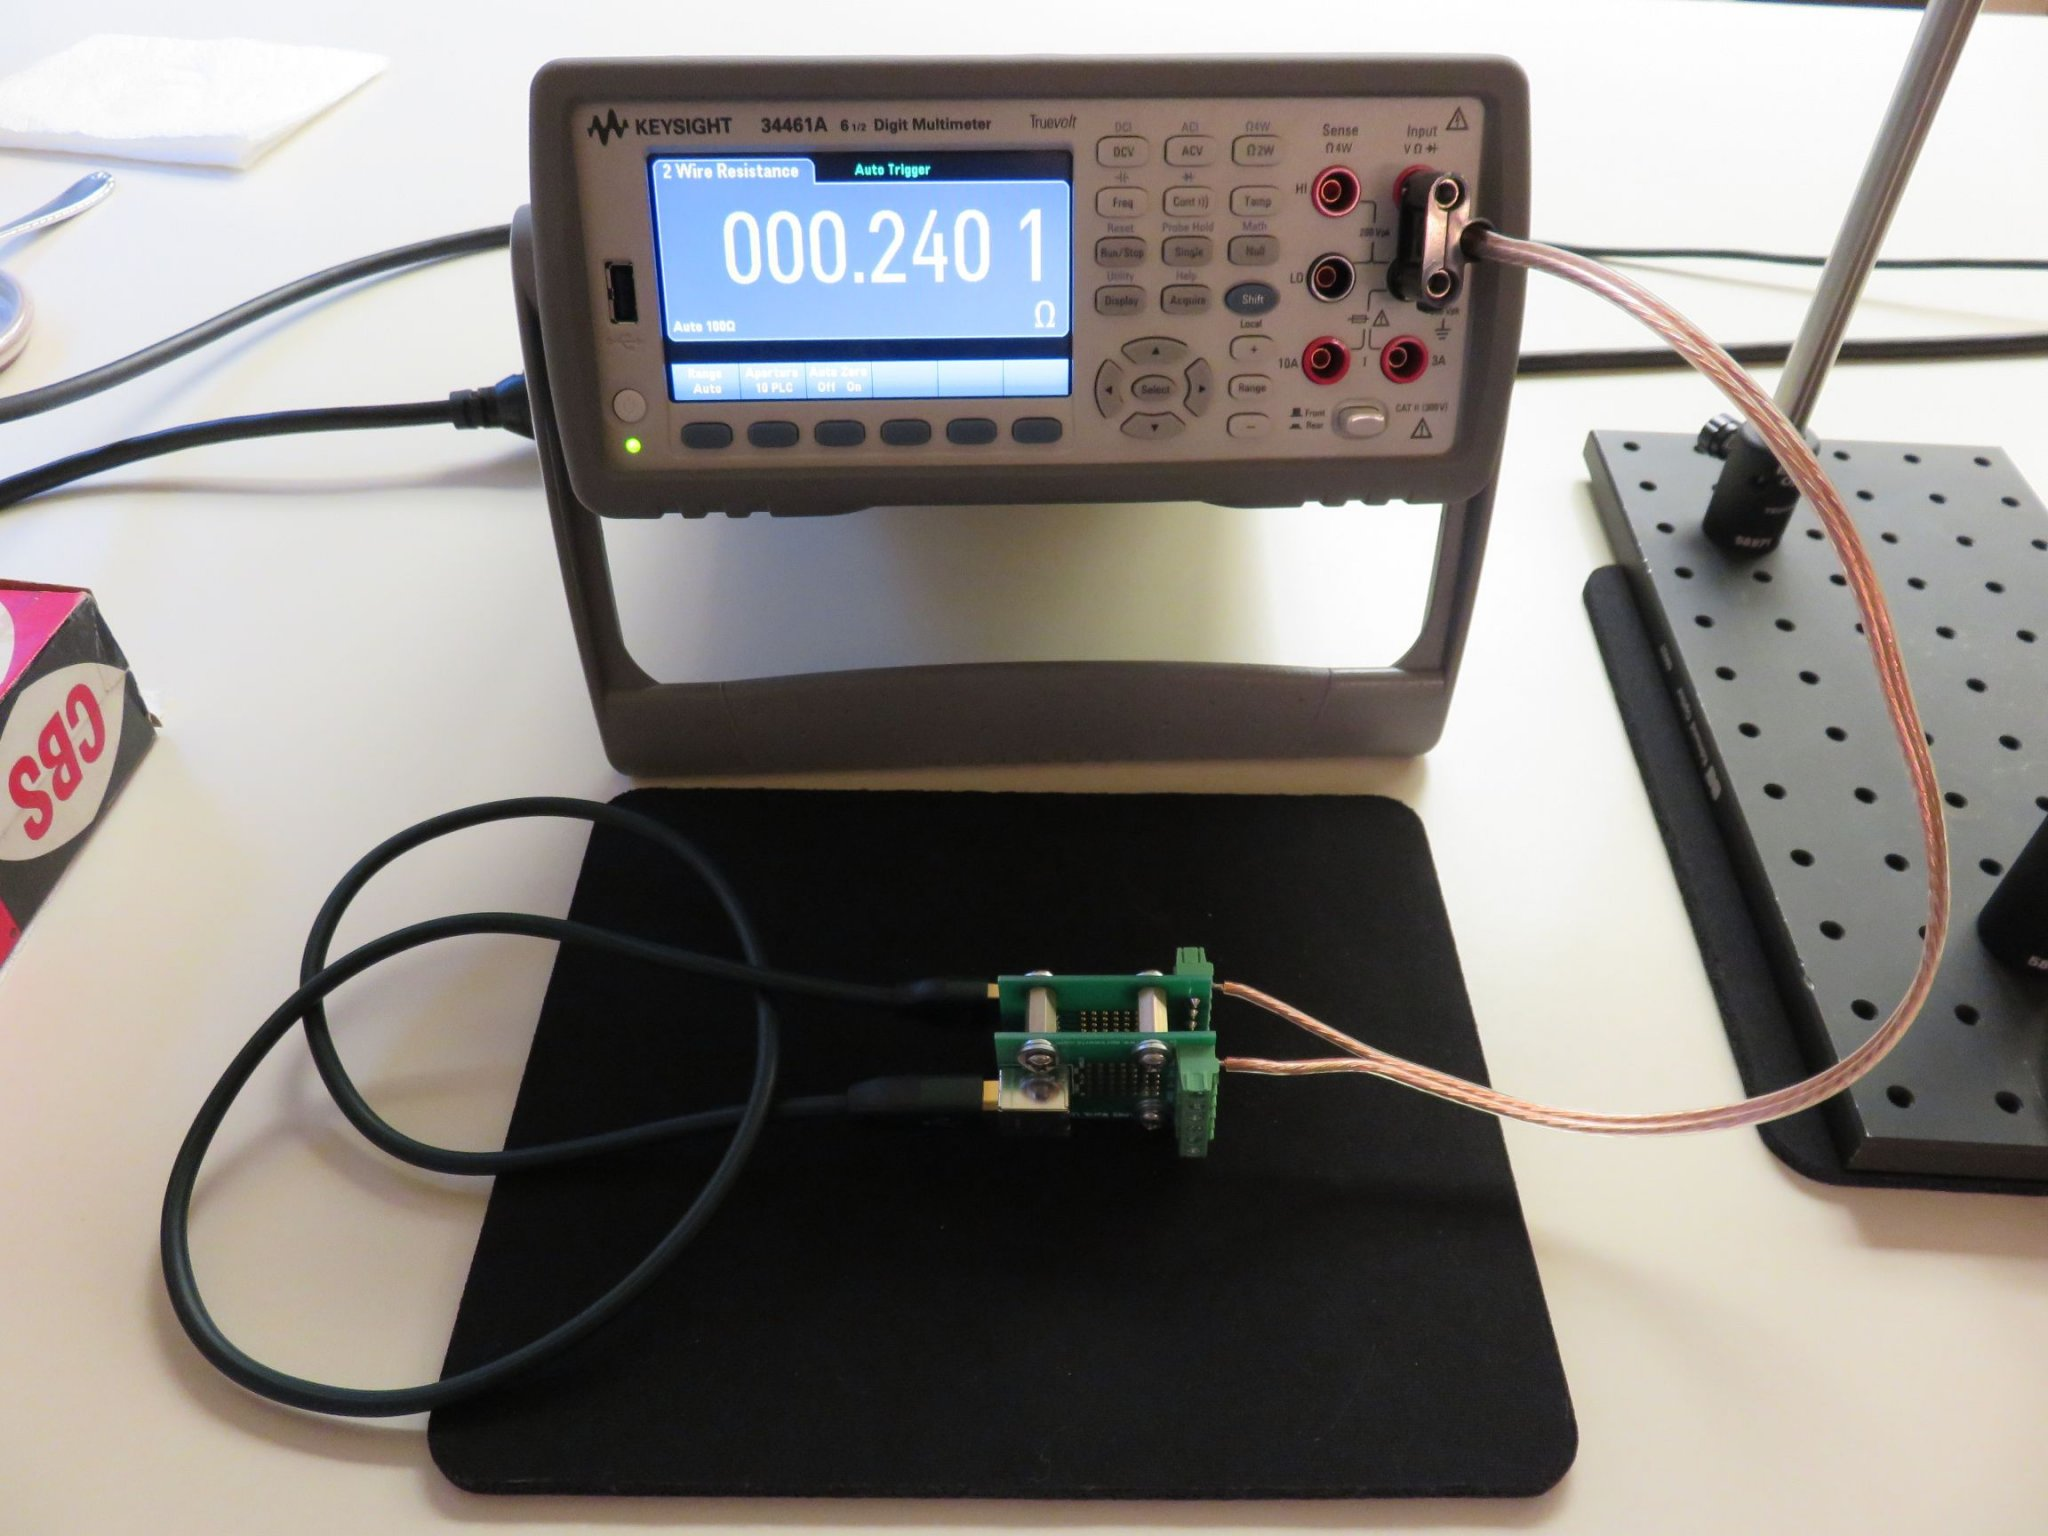 USB cable sheild measurement setup - small.jpg